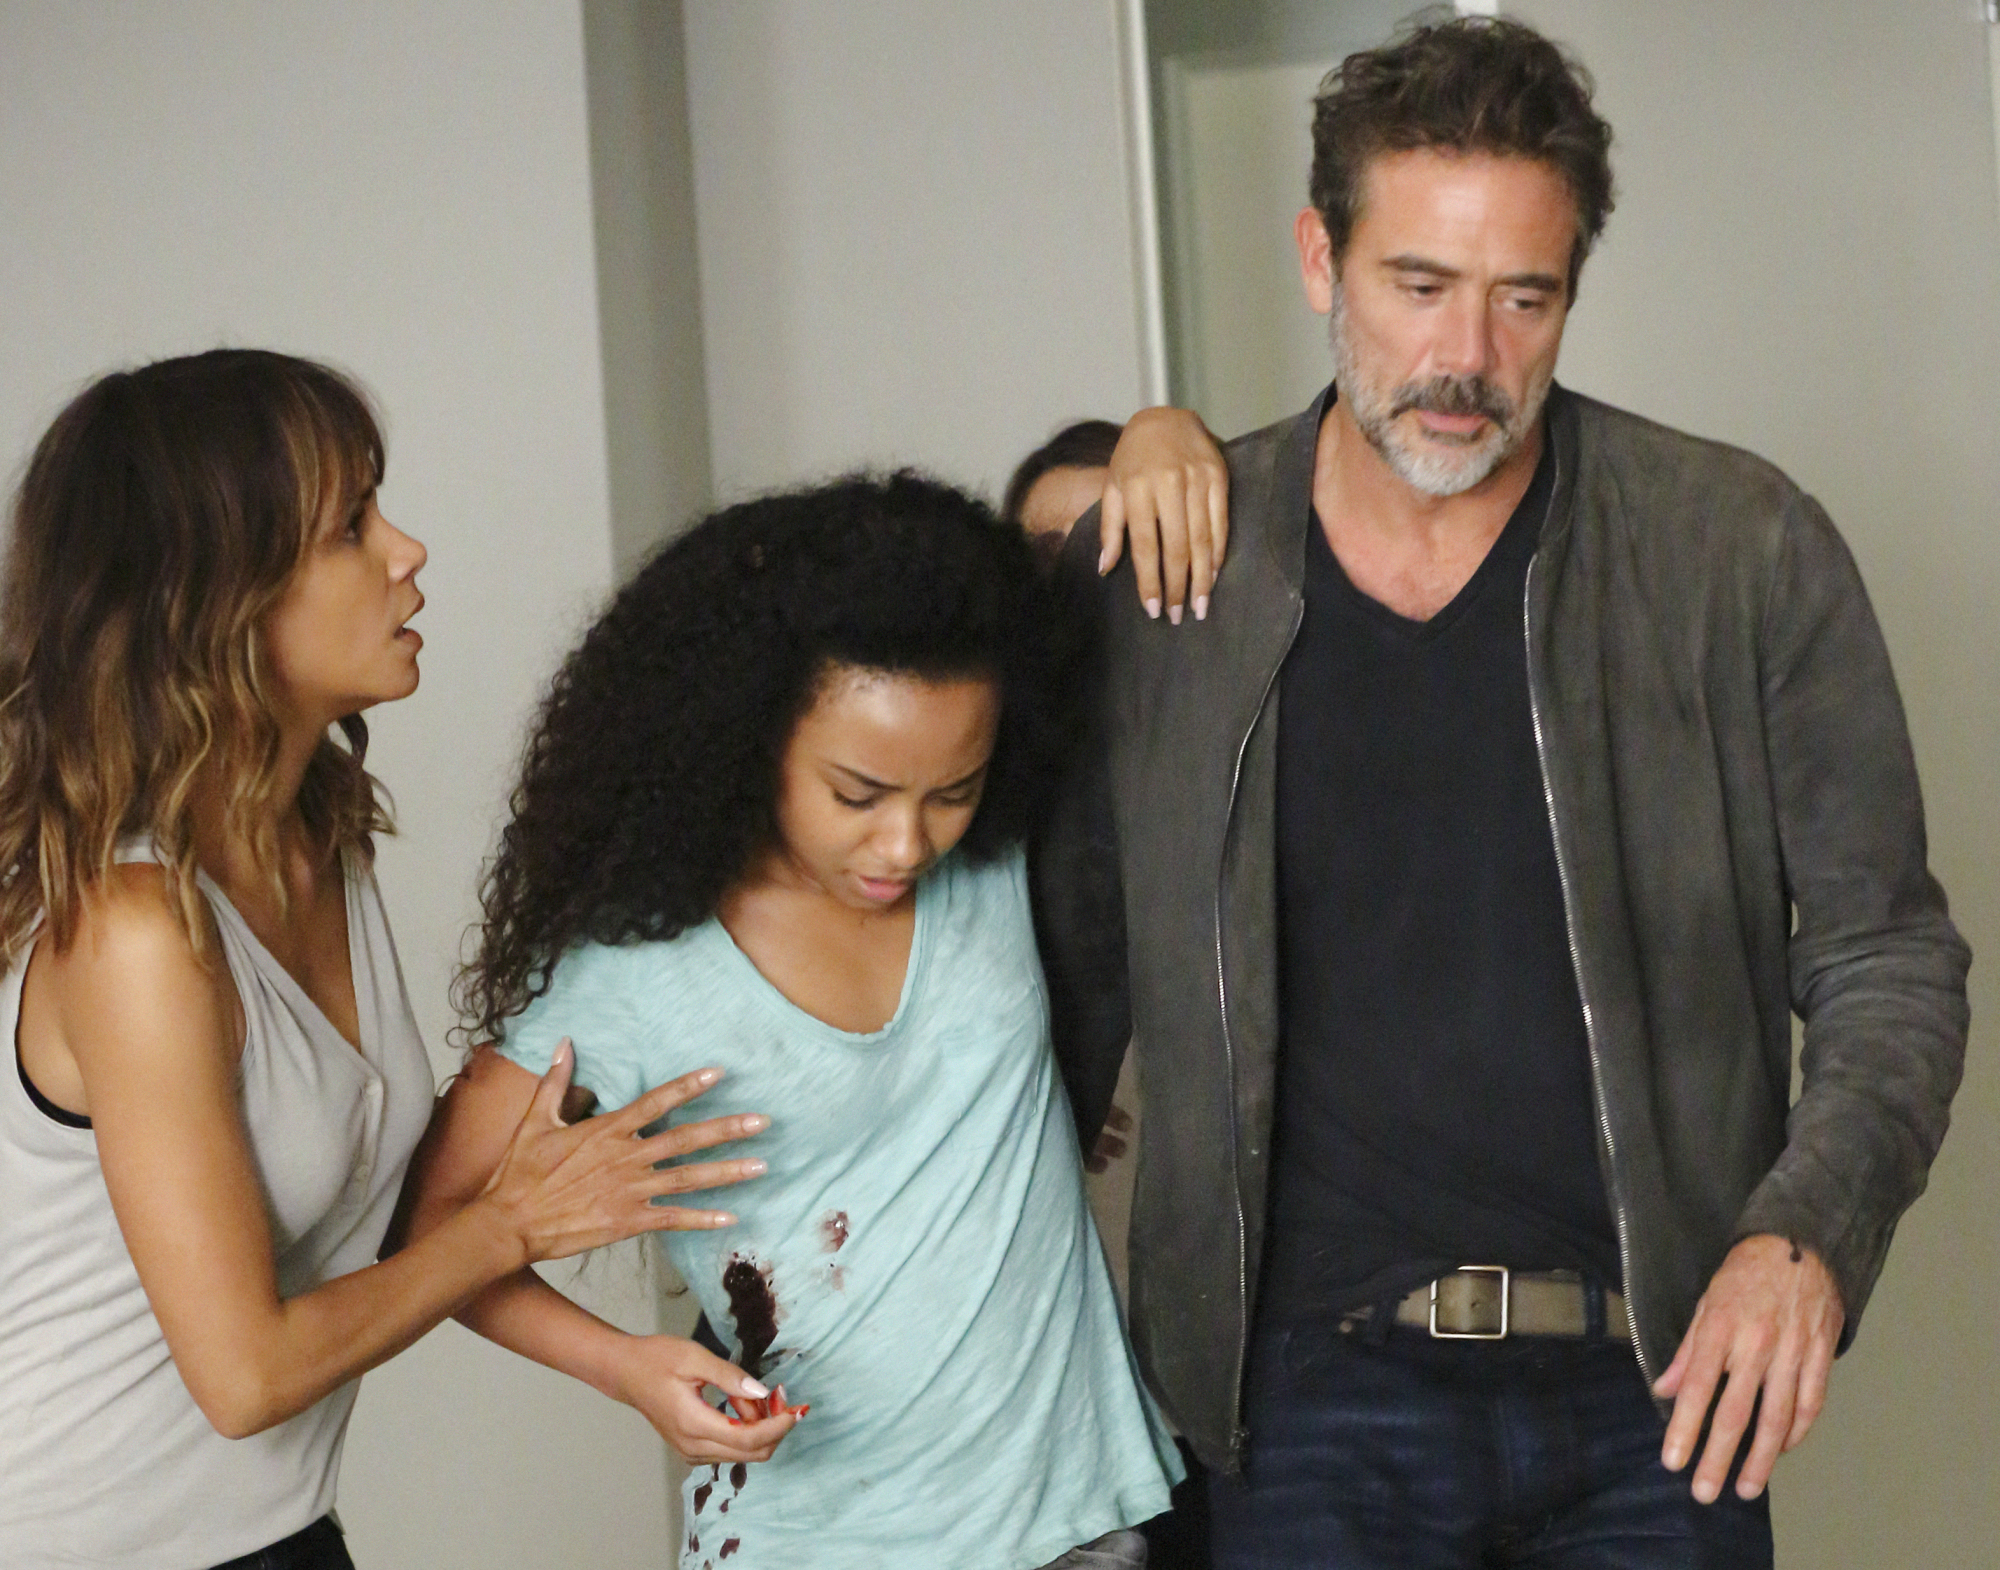 Halle Berry as Molly Woods, McKenna Roberts as Terra, and Jeffrey Dean Morgan as JD Richter.